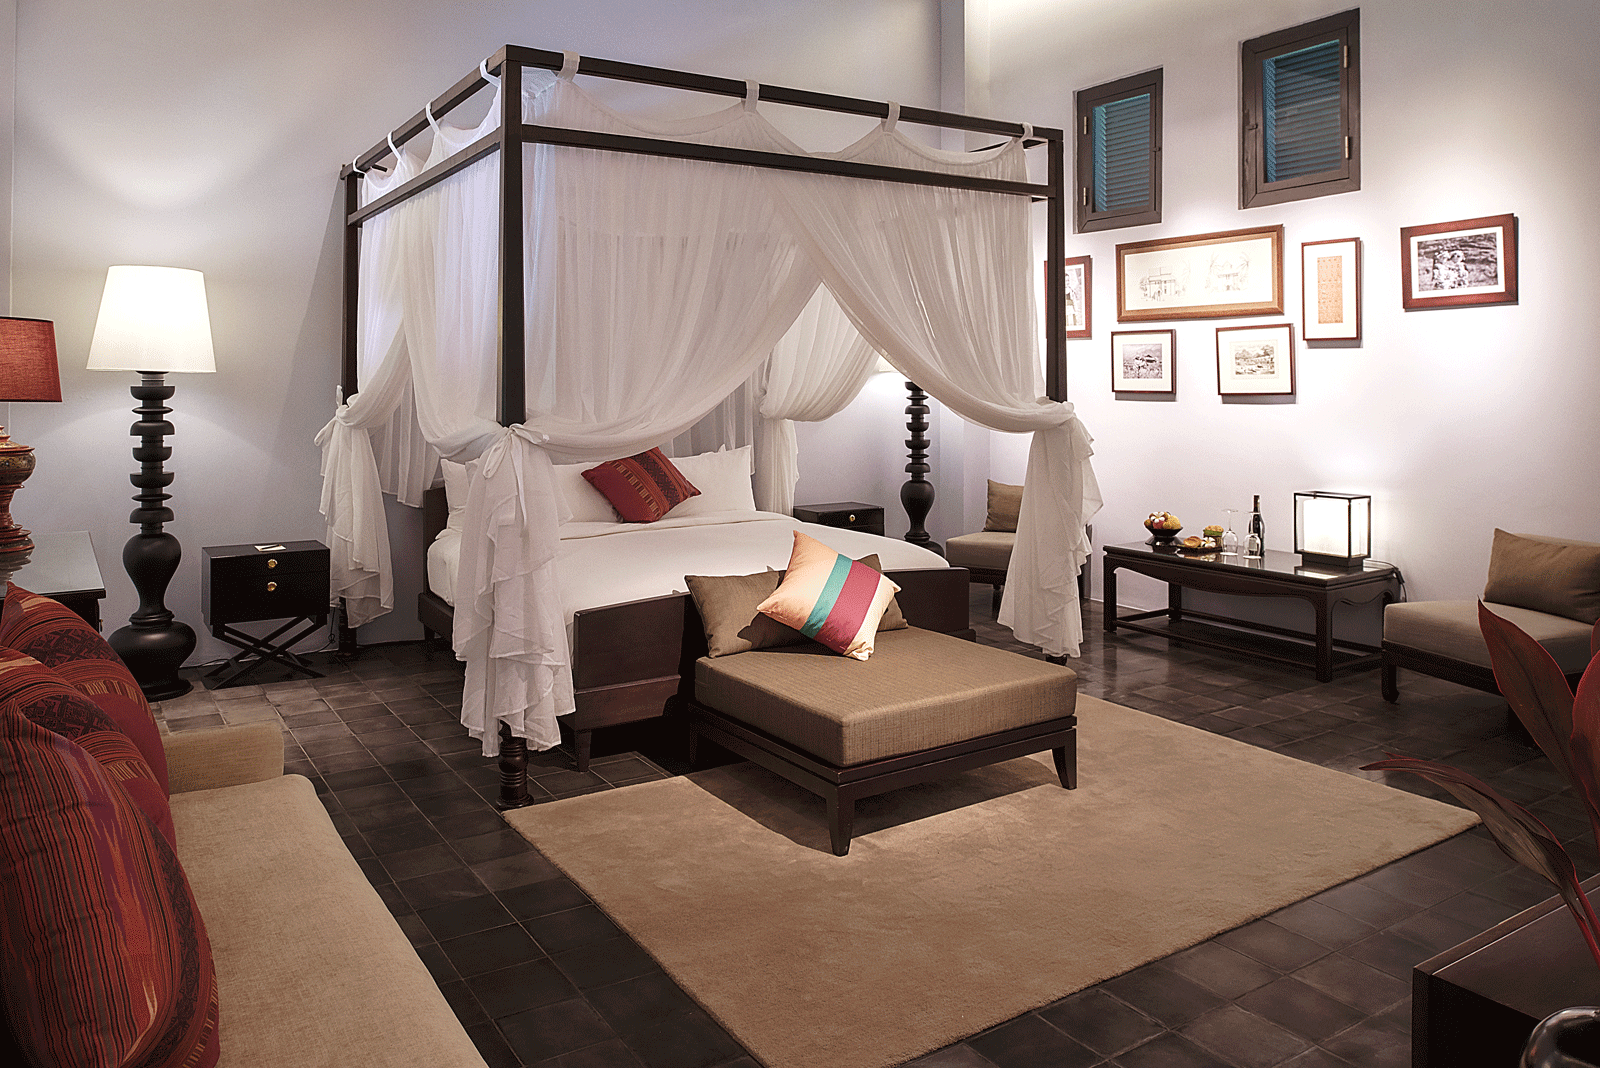 Sofitel-Luang-Prabang---Governor's-Signature-Residence-bedroom.png